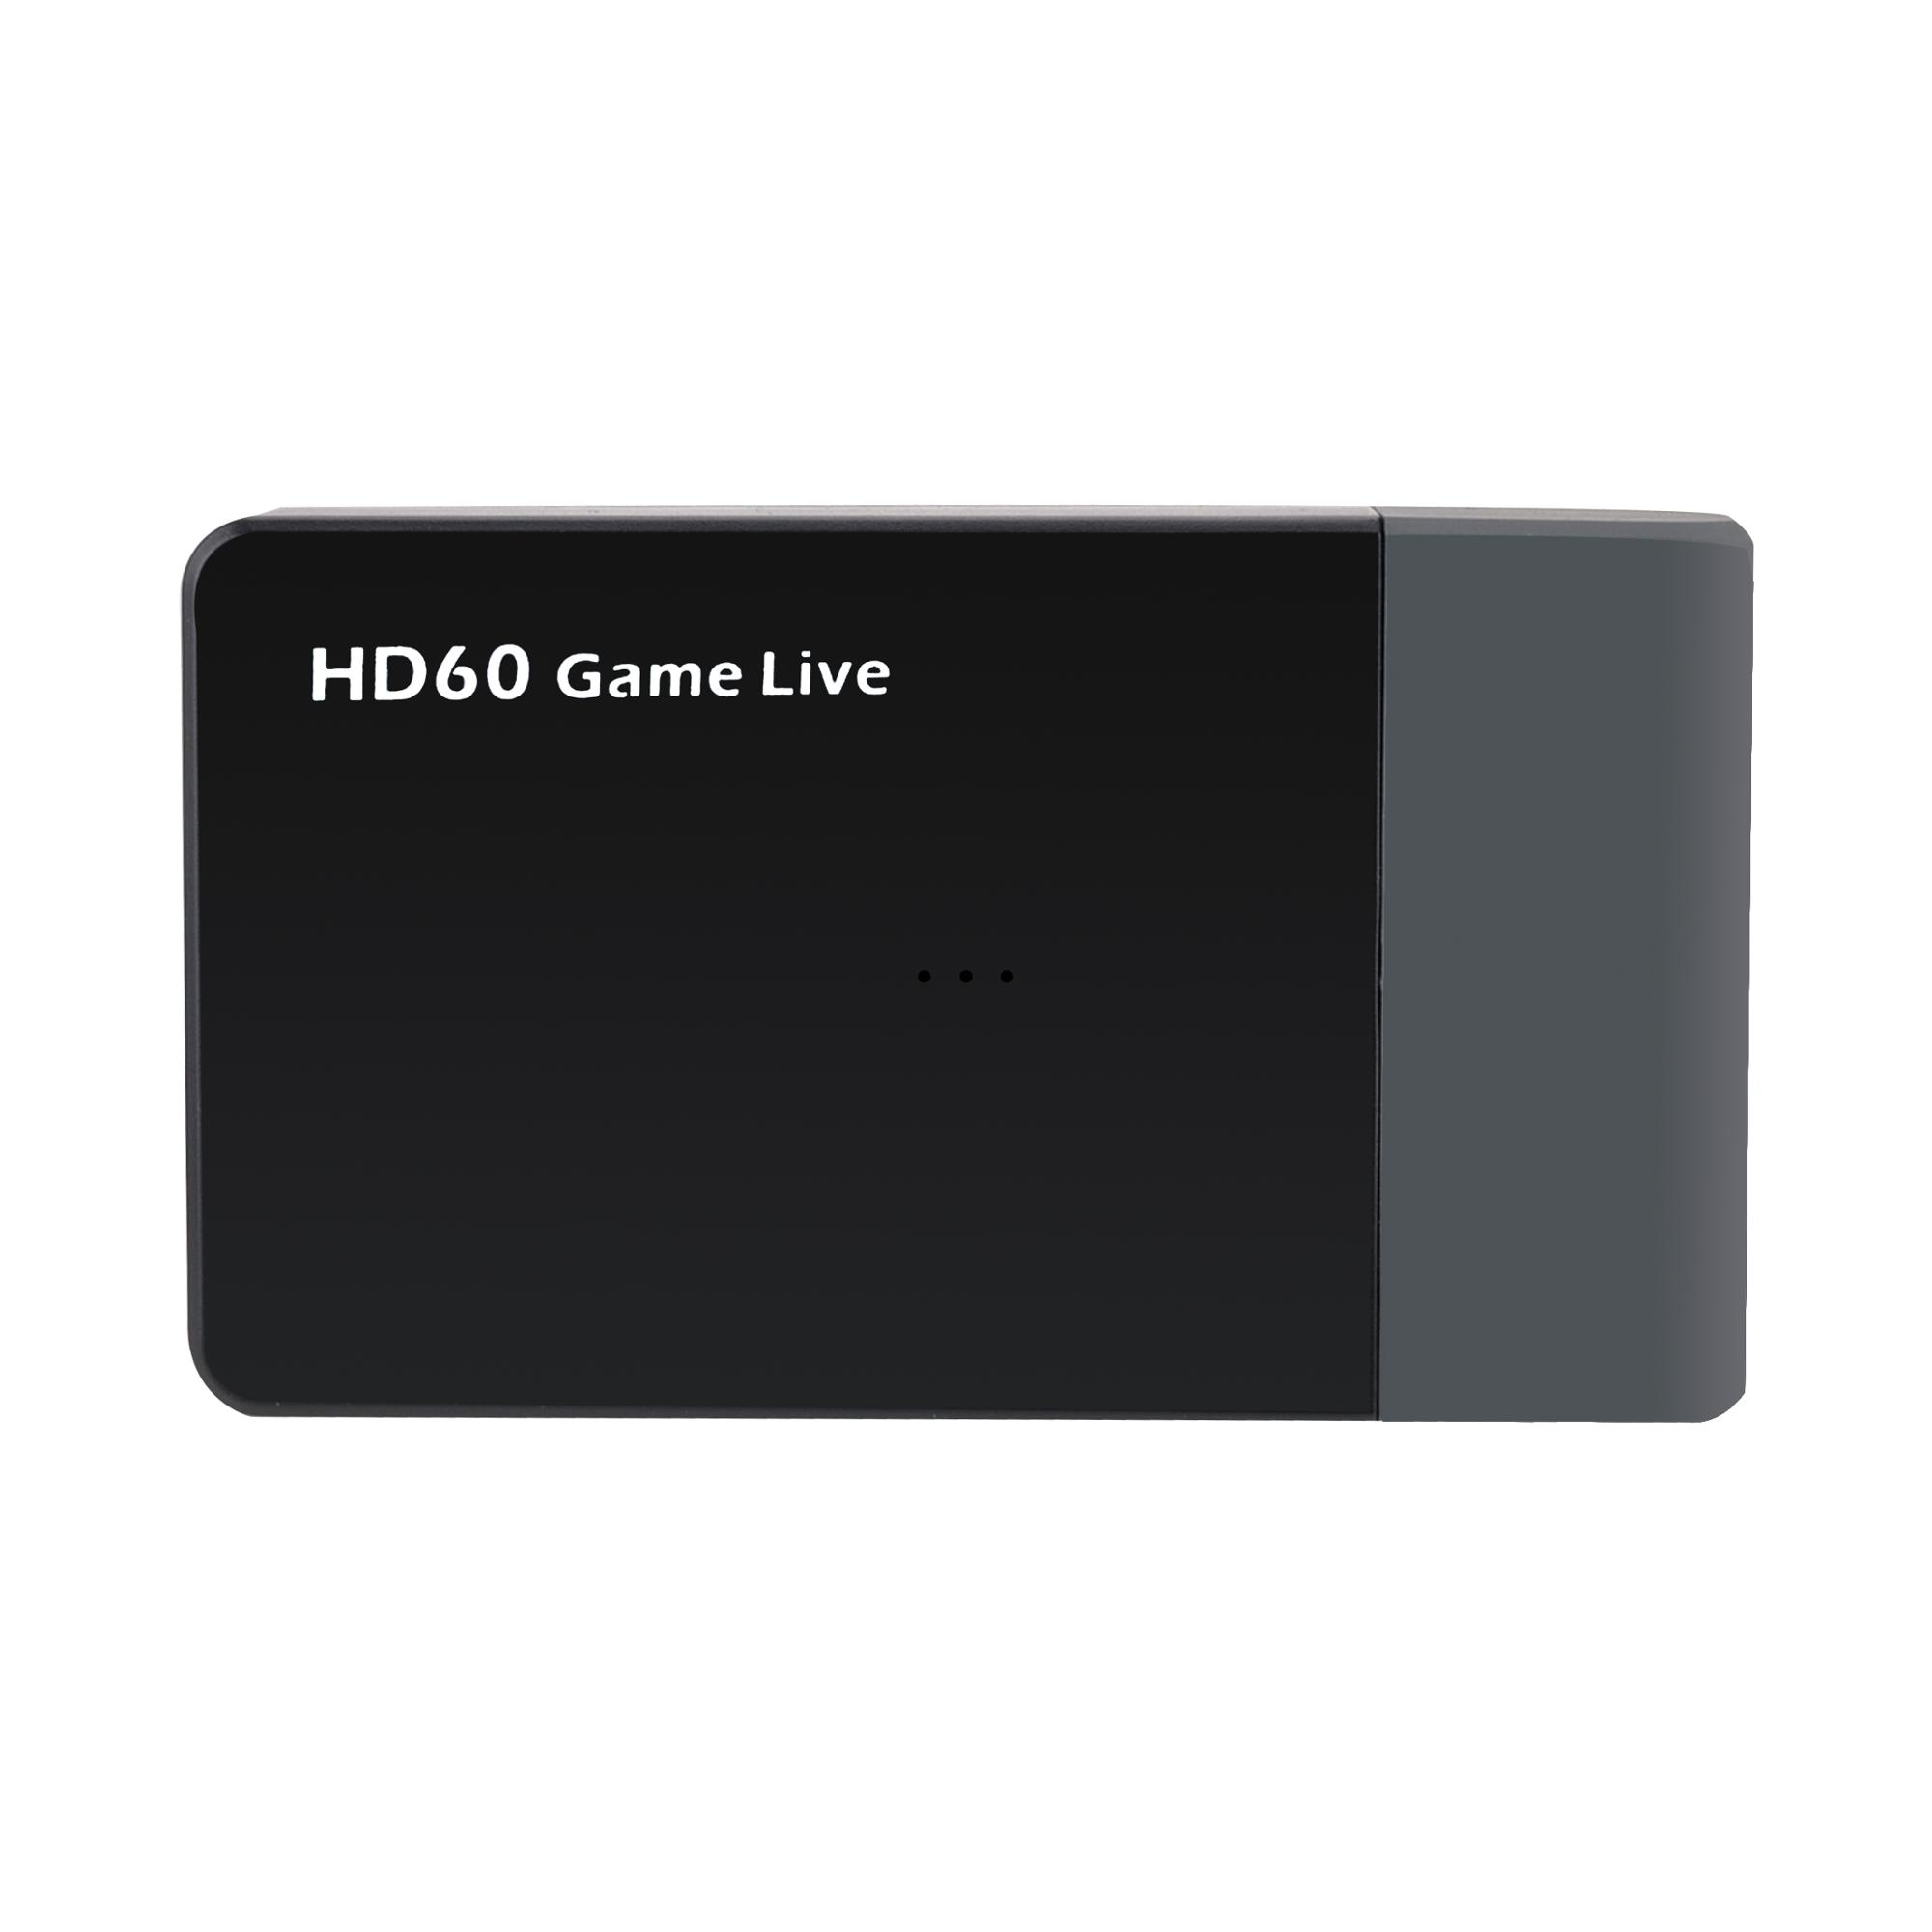 Amazon hot selling 1080P HDMI to USB 3.0 UVC Capture Card Dongle for Live streaming with MIC in 4K input ezcap261M